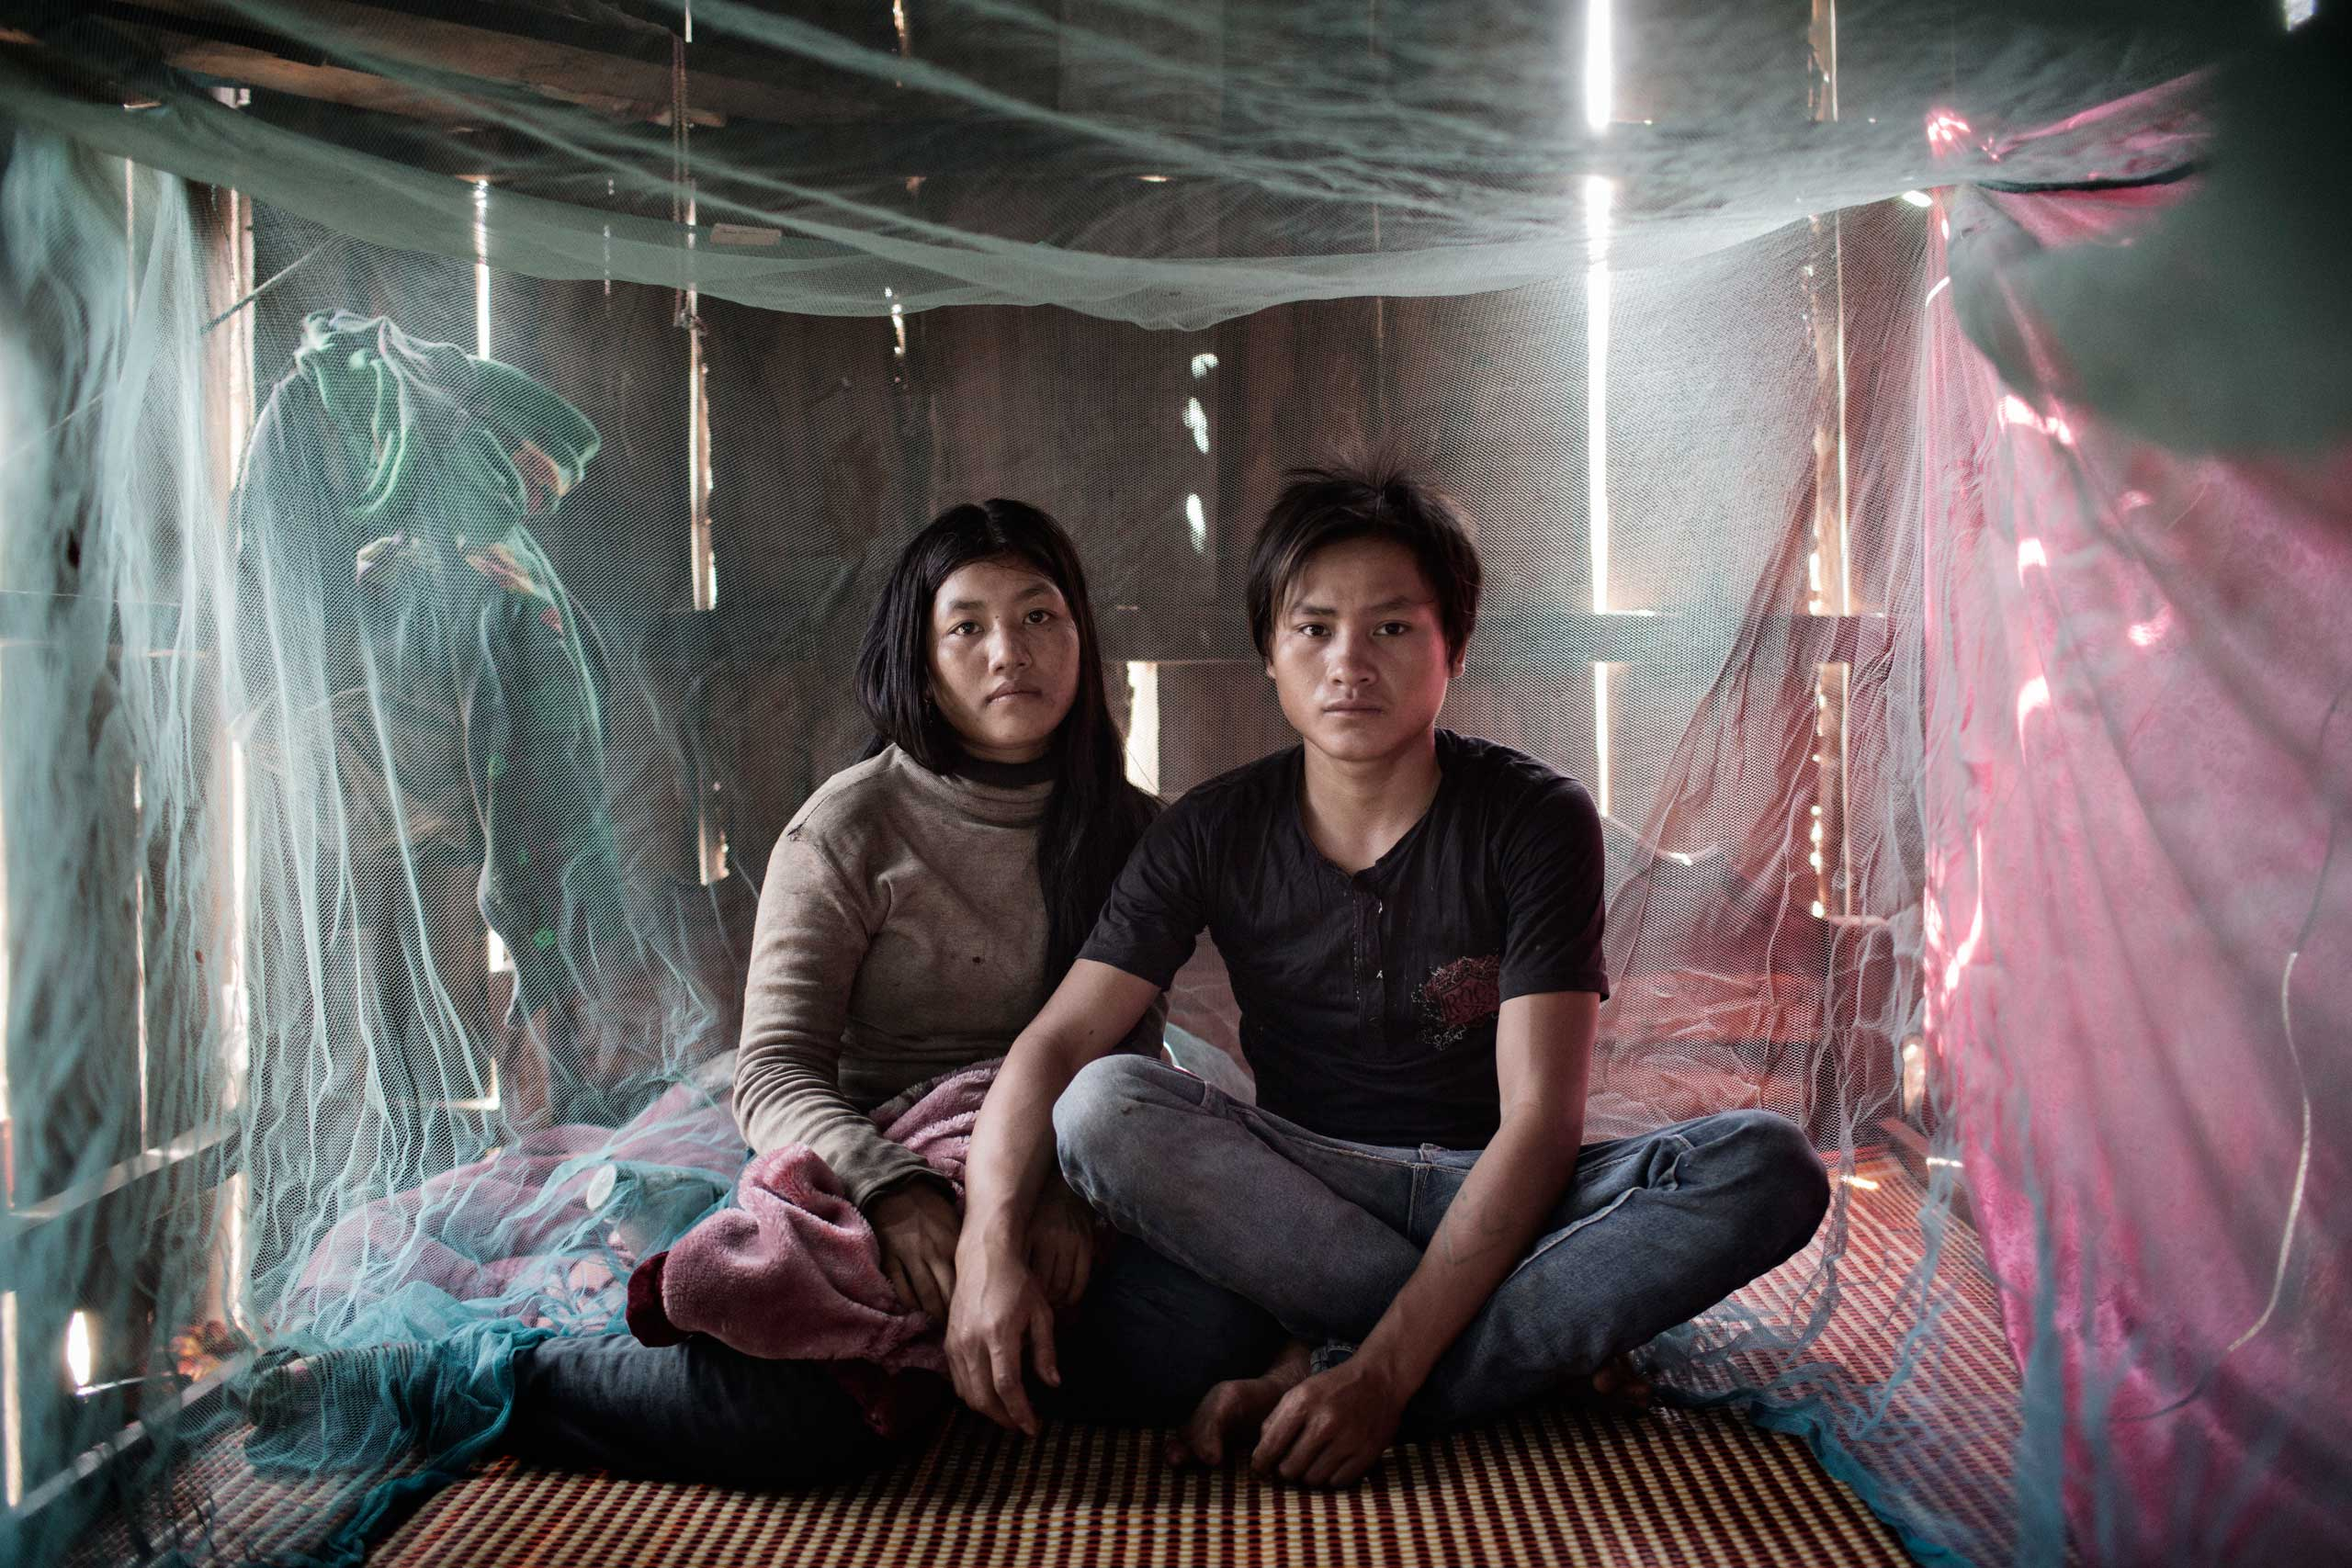 Al Jazeera America: Cambodia's Child GroomsKhien, 17, left, and her husband Kleng, 19, at their home in Nhang Commune. They are technically not married but live together with the consent of the community. They plan to wed when they can afford the ceremony.